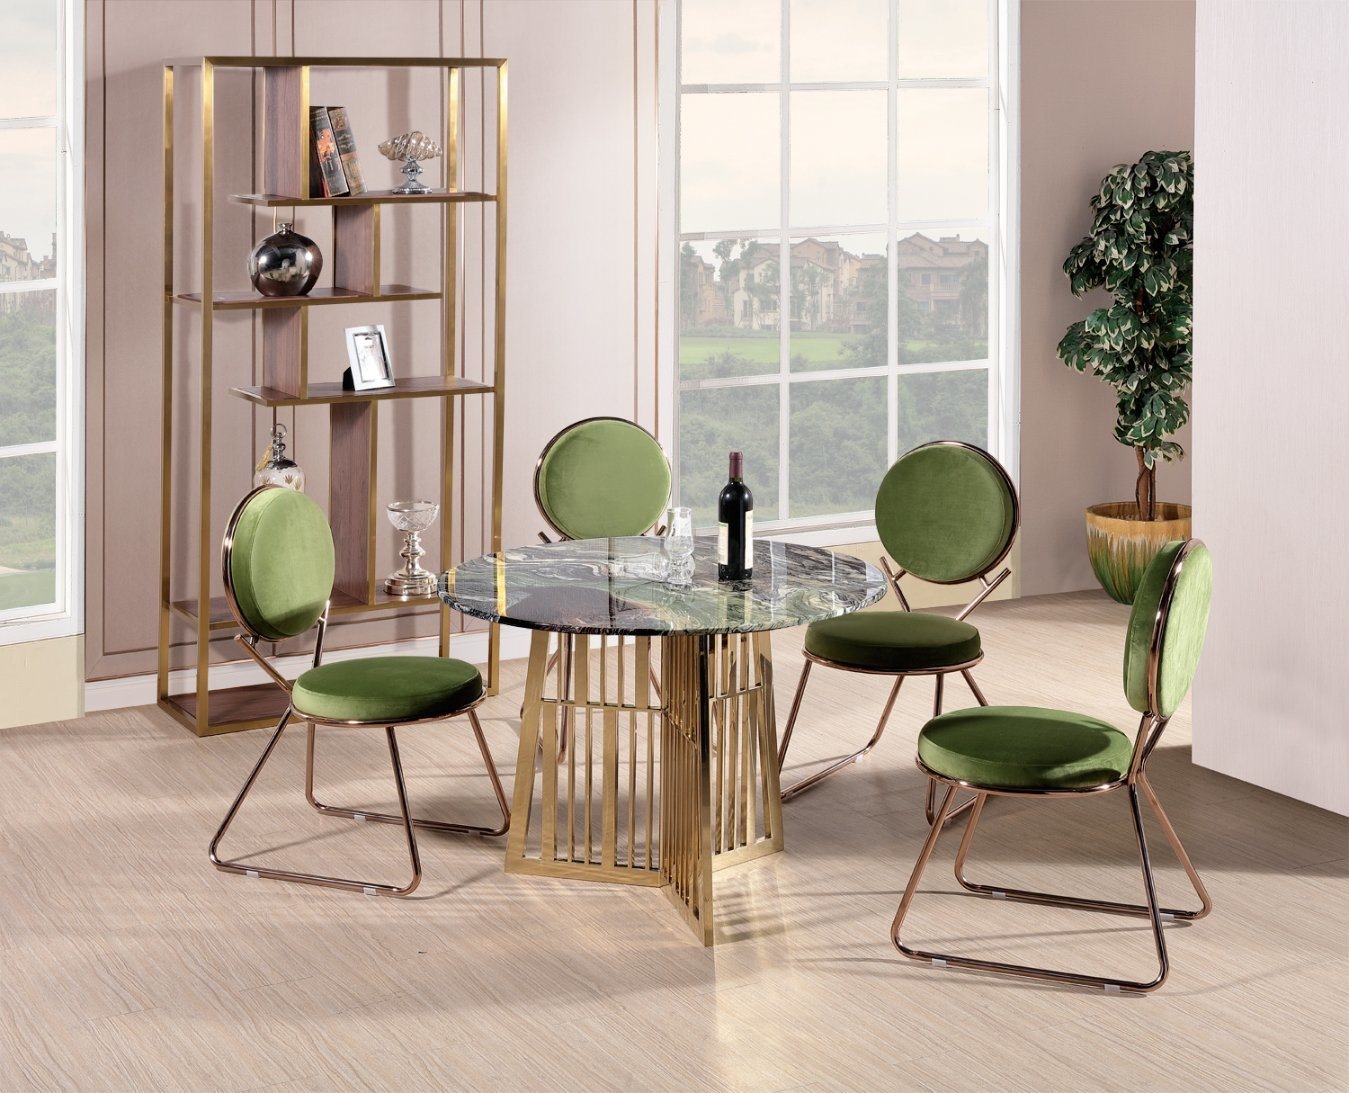 Home Furniture Dining Table Chair